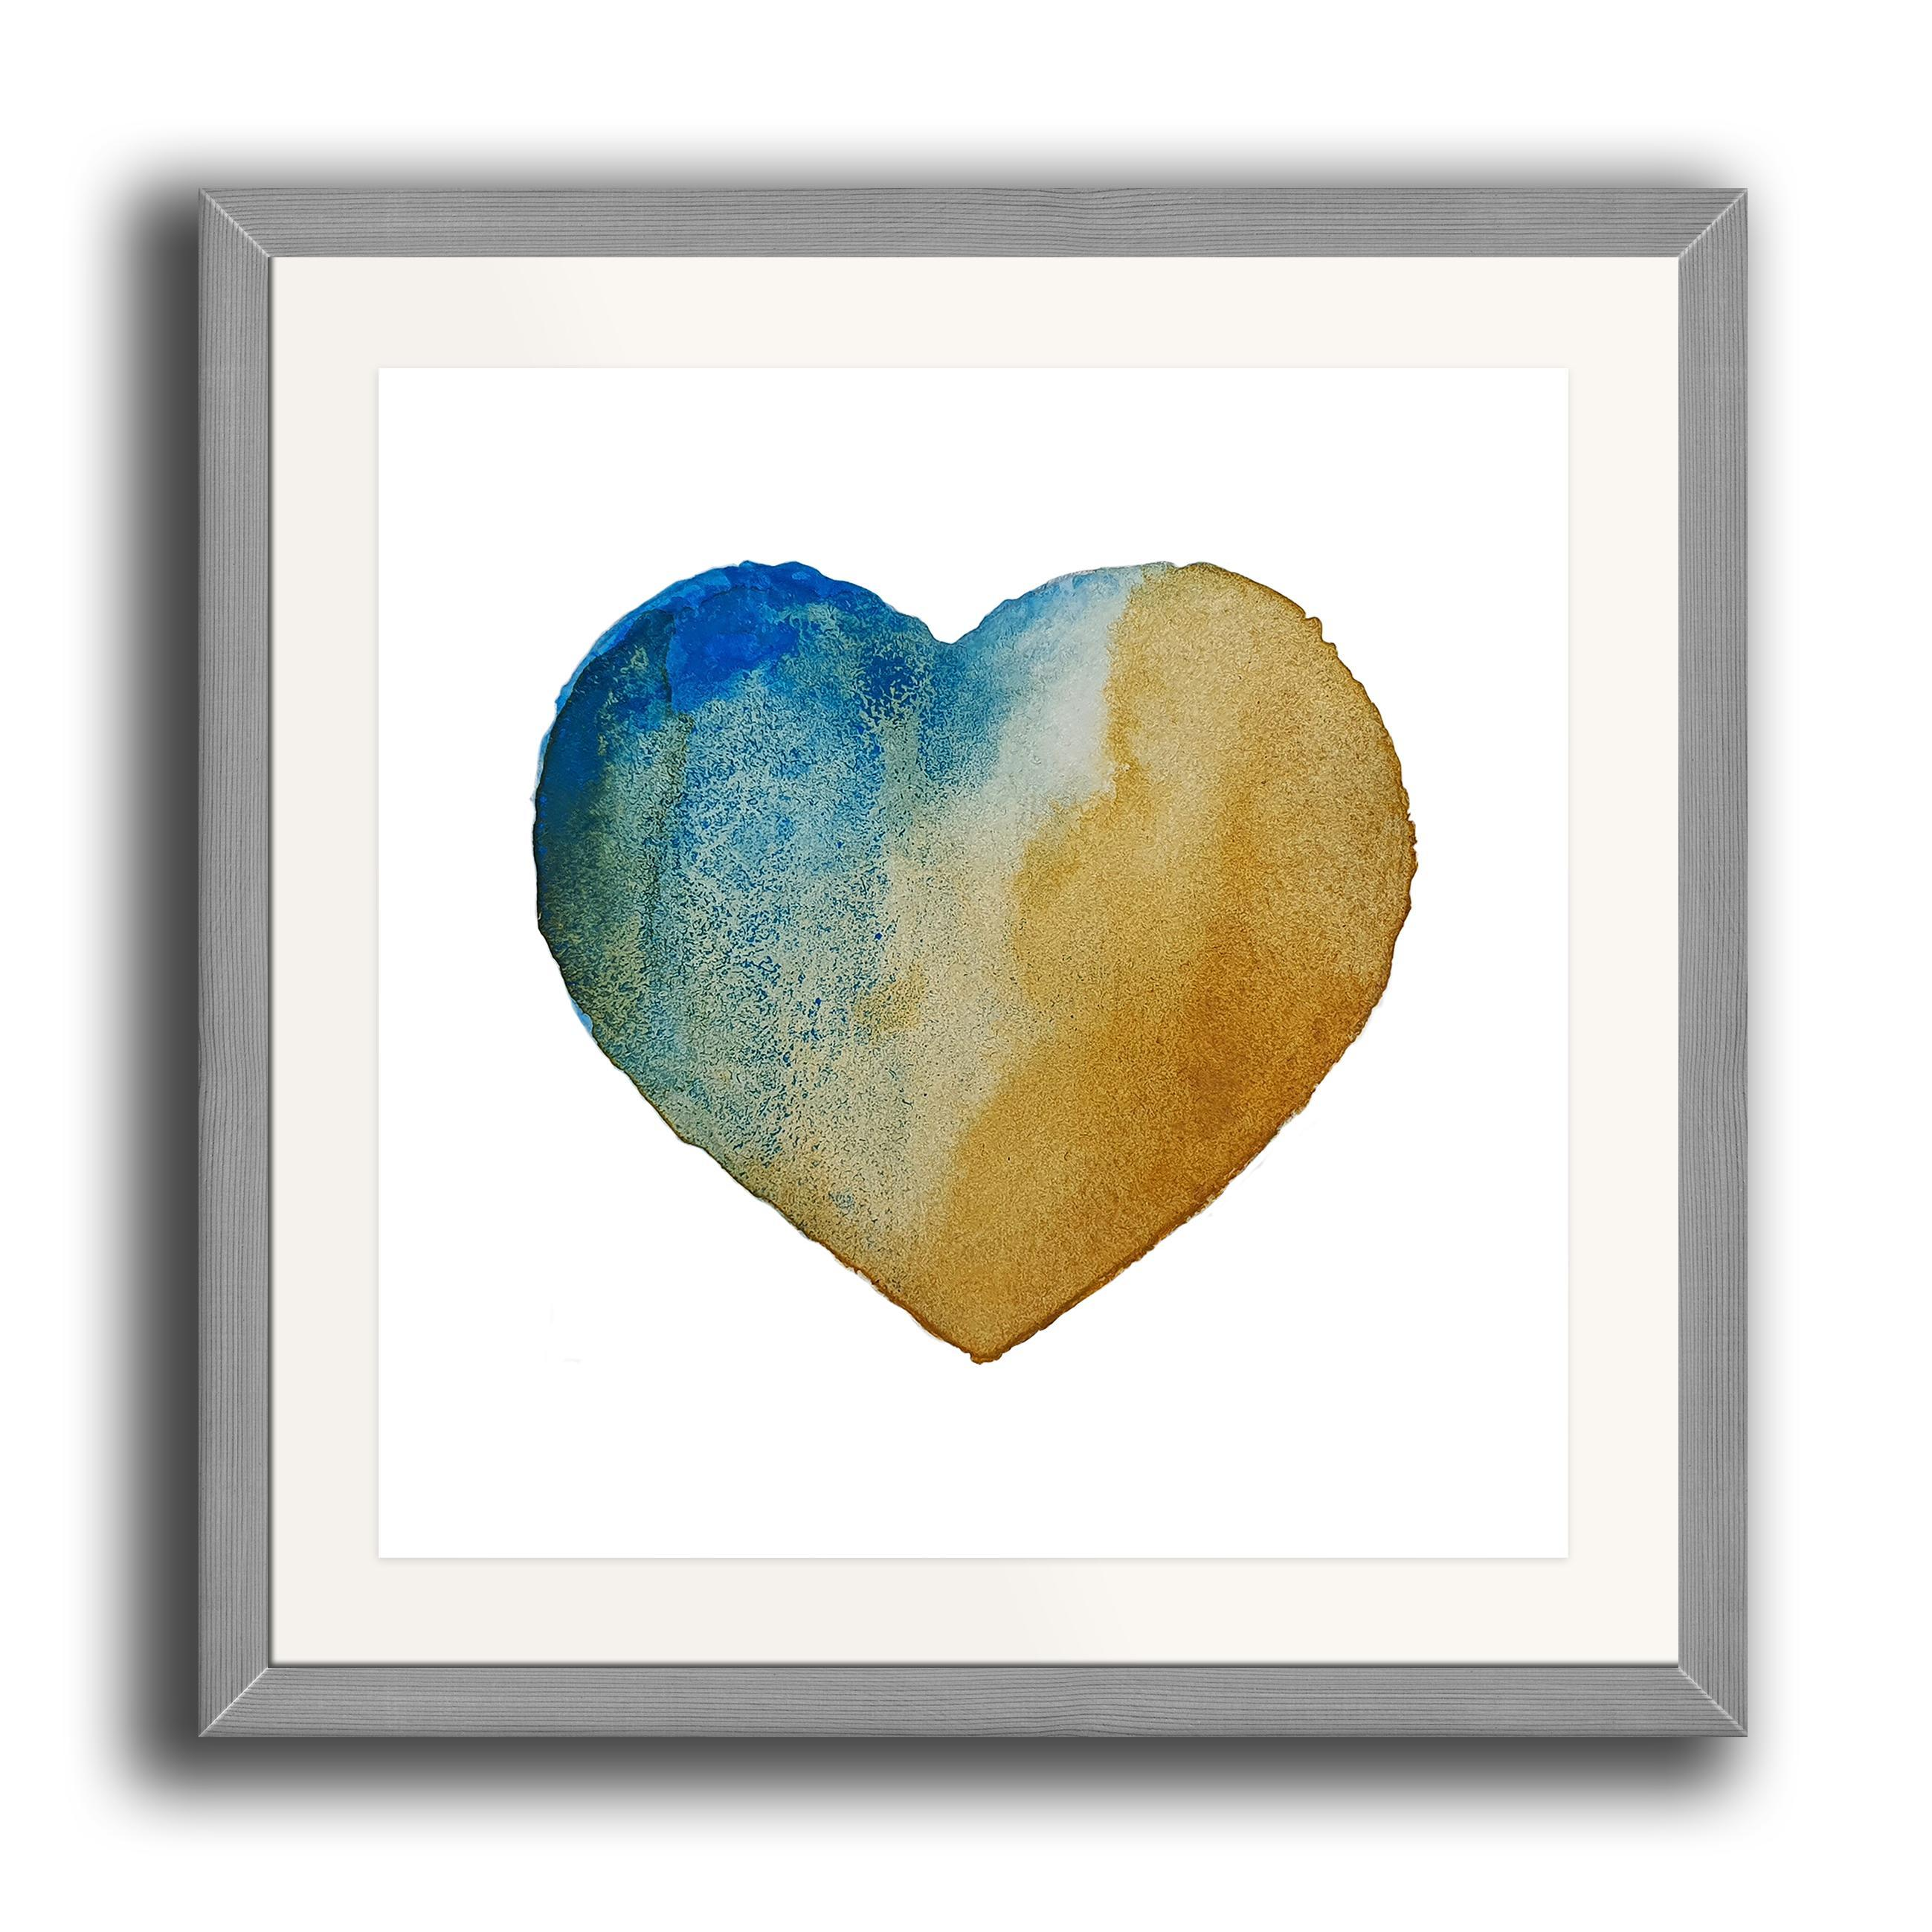 A watercolour print by Clarrie-Anne on eco fine art paper titled Beach Heart showing a textured turquoise golden sand coloured heart on a white background. The image is set in a beech coloured picture frame.